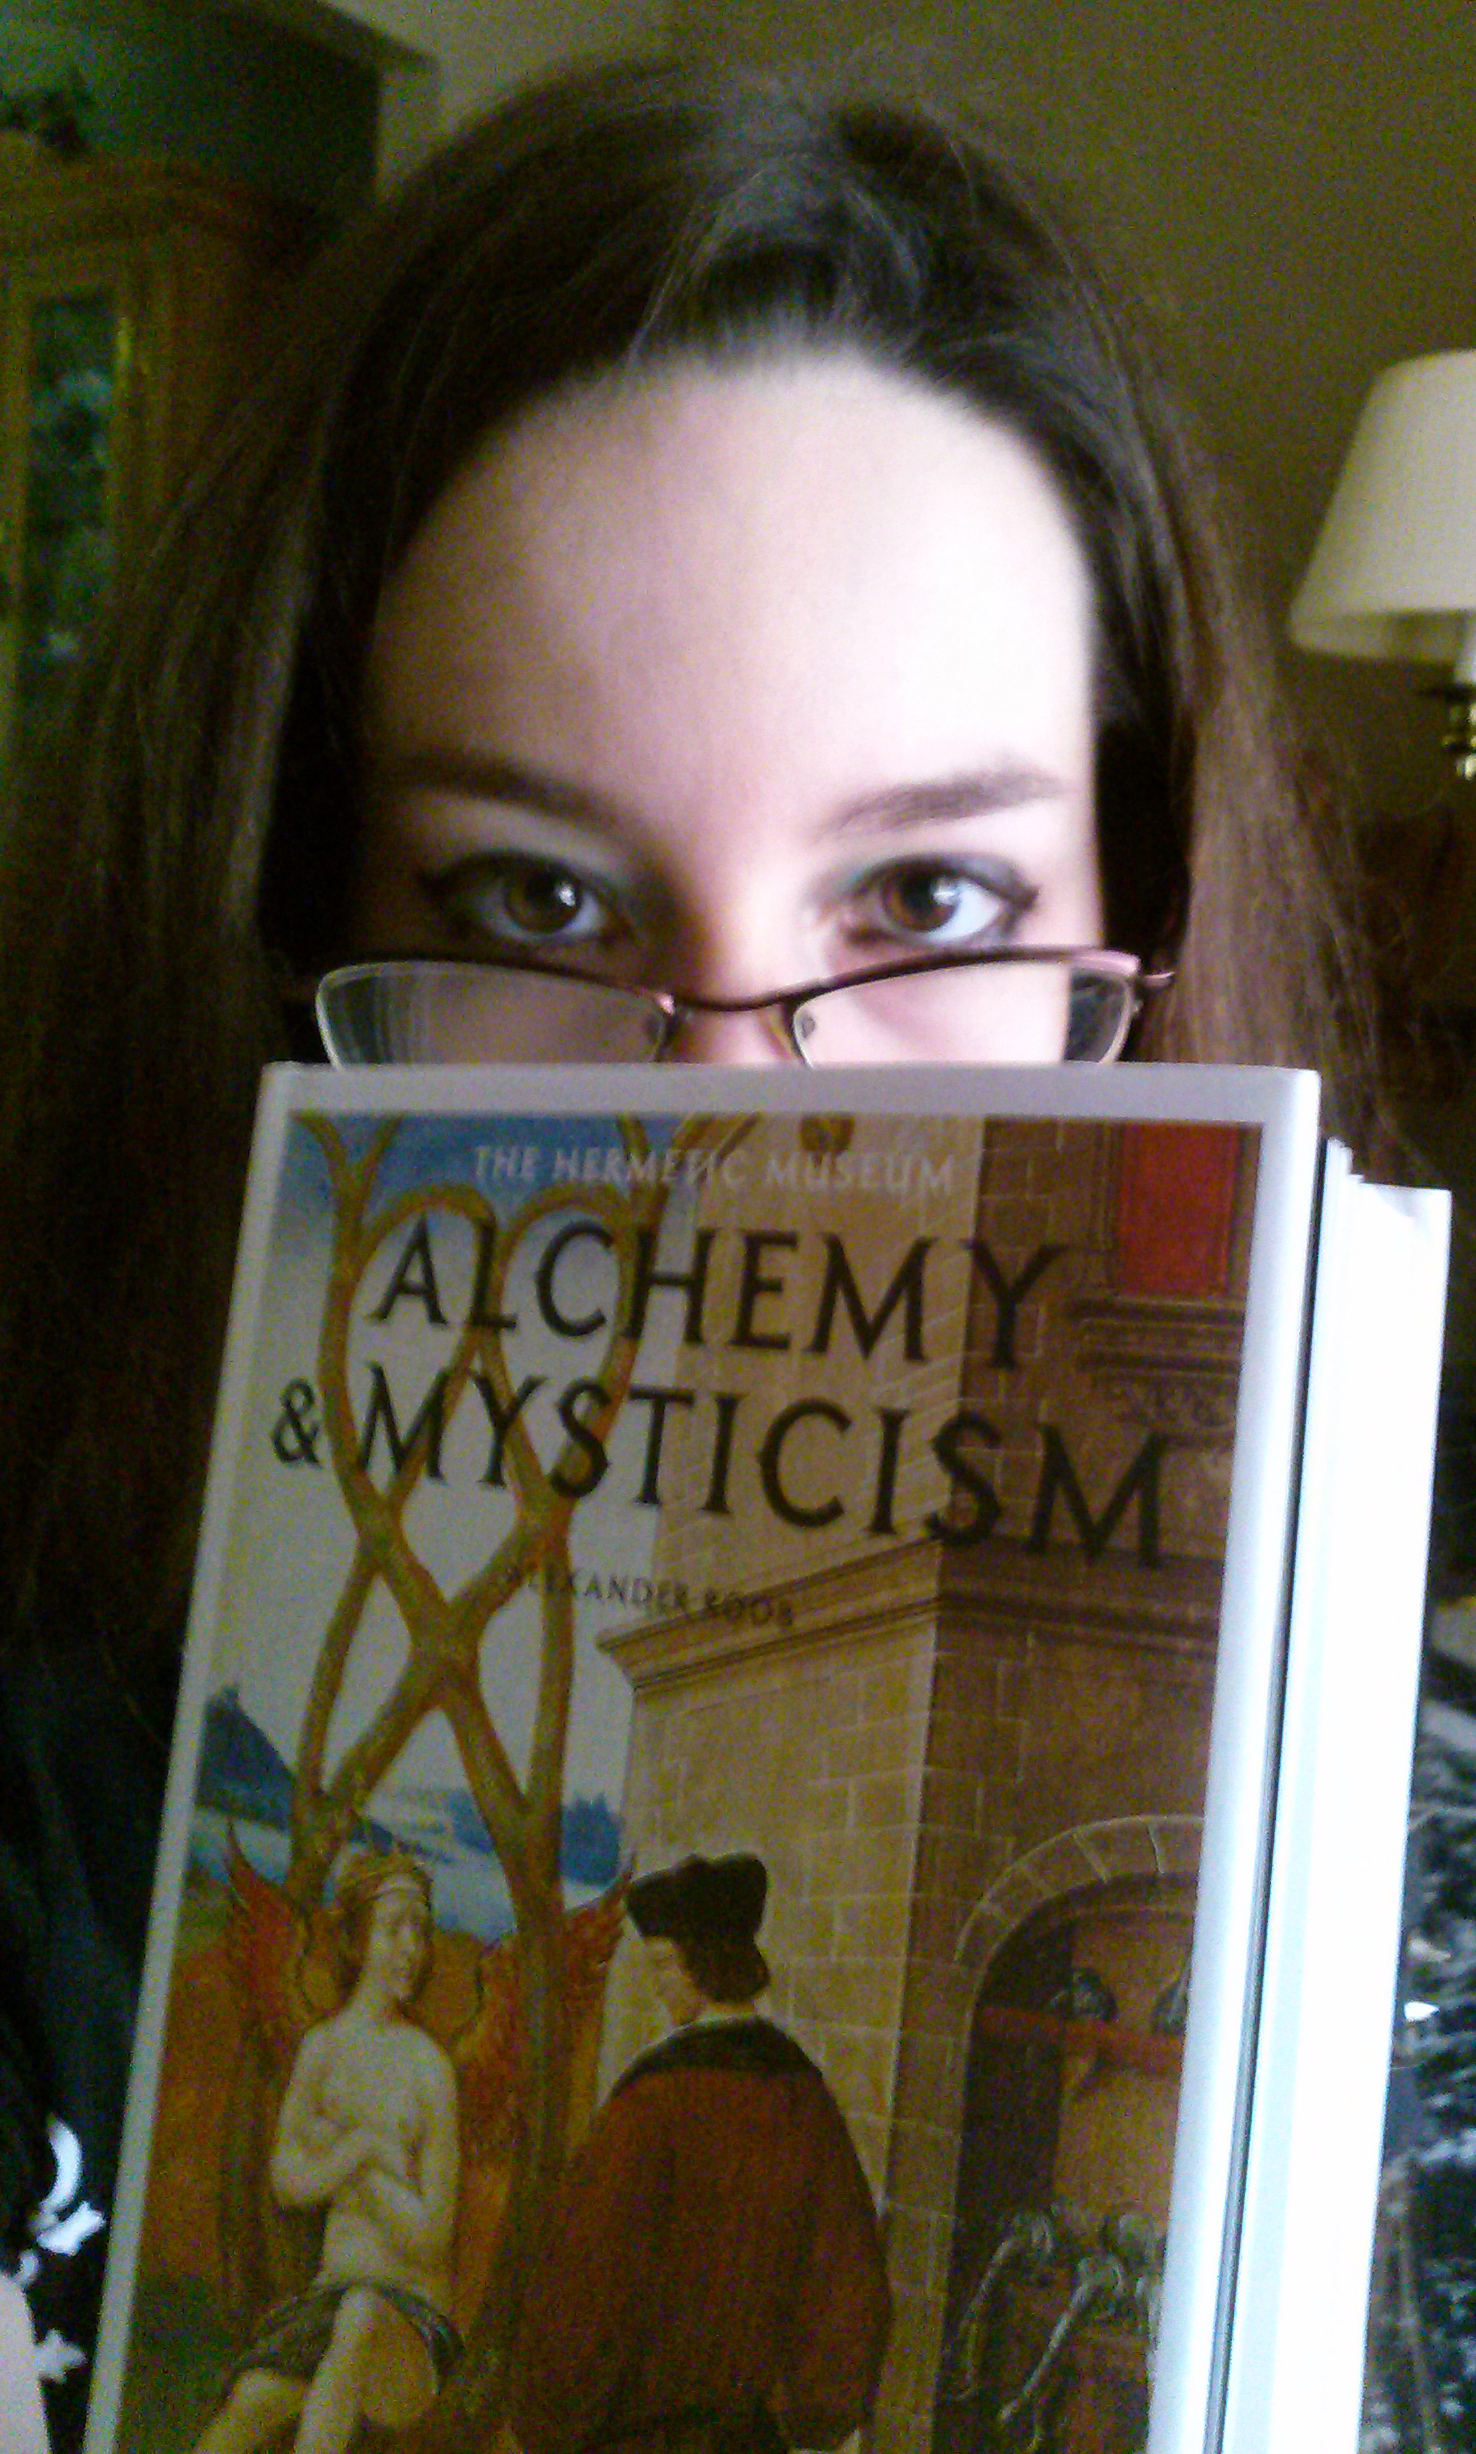 Alchemy and Mysticism. Oh yes.